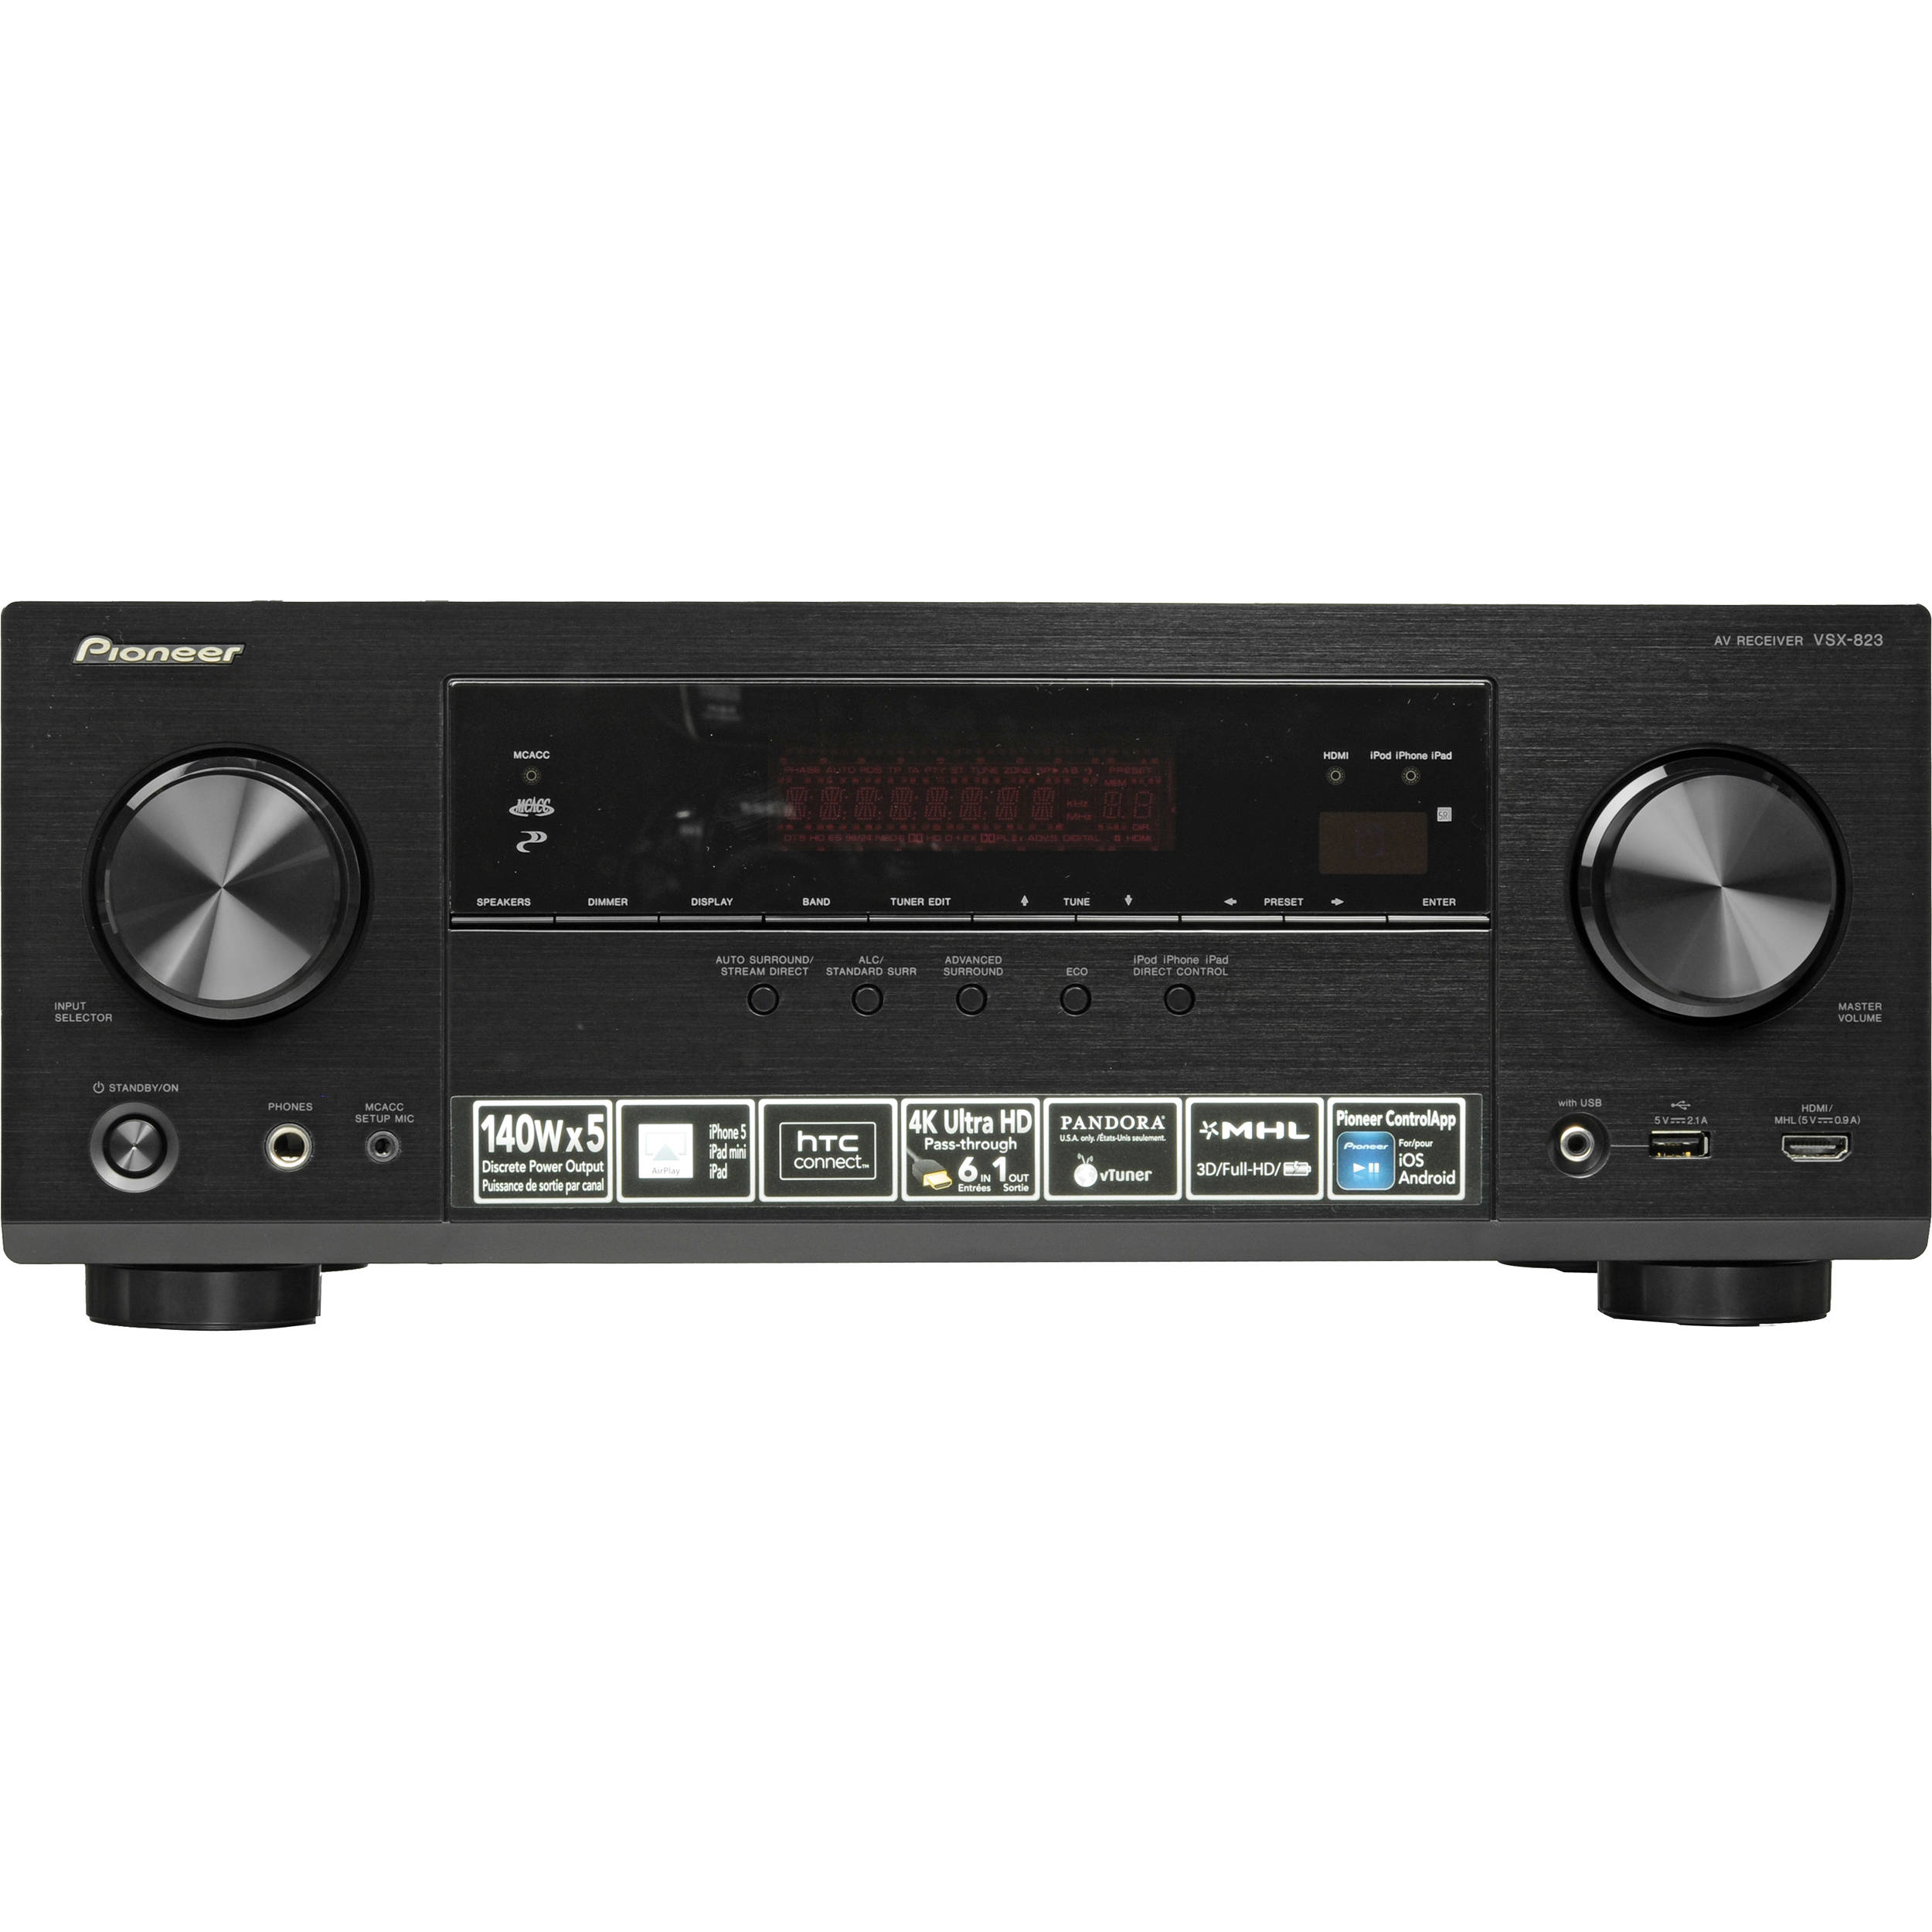 Pioneer VSX-823-K 5.1-Channel Network Ready AV Receiver